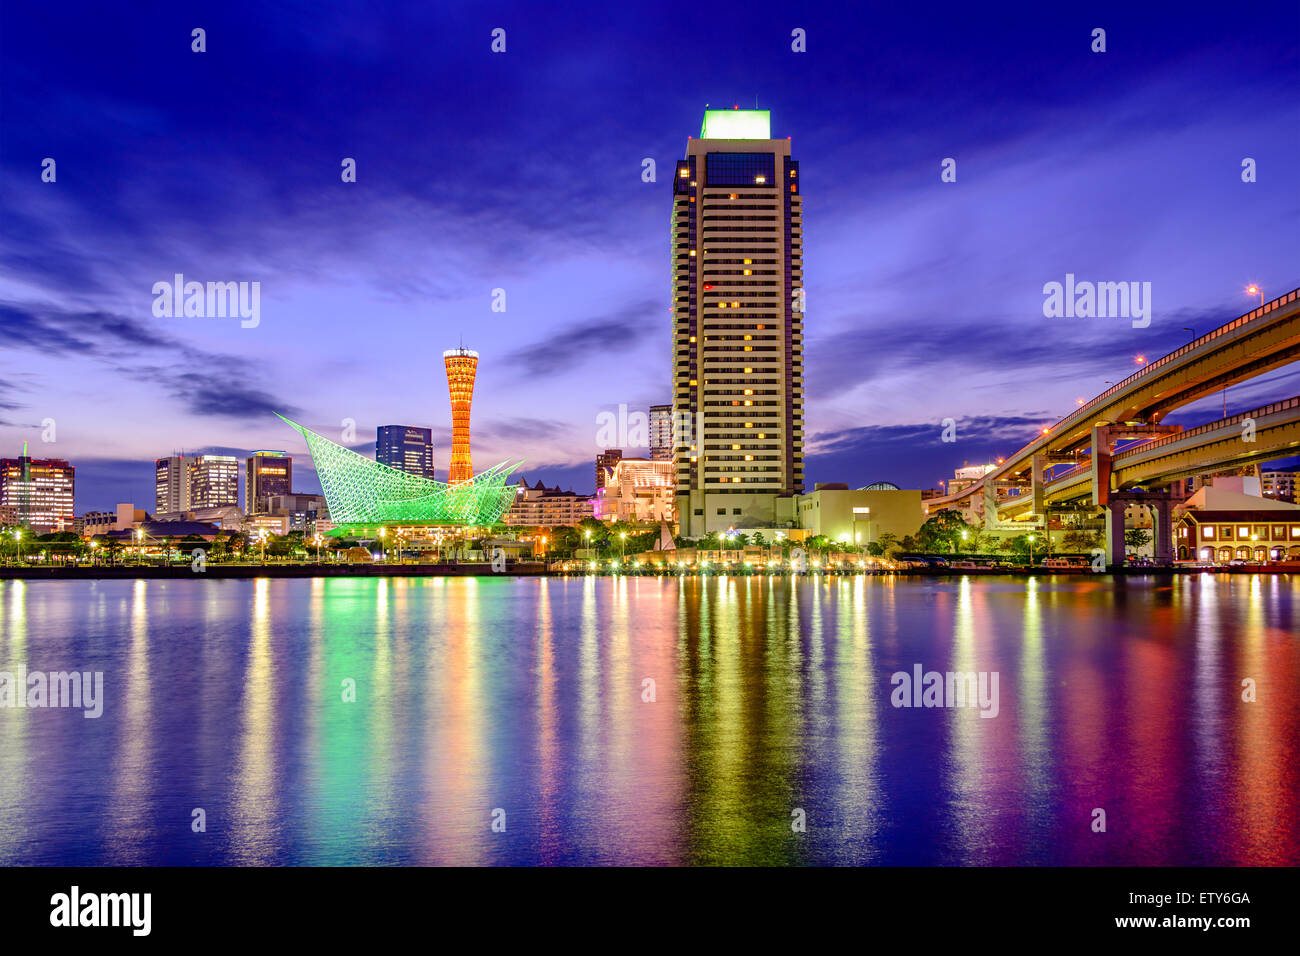 Kobe, Japan skyline at dusk. - Stock Image